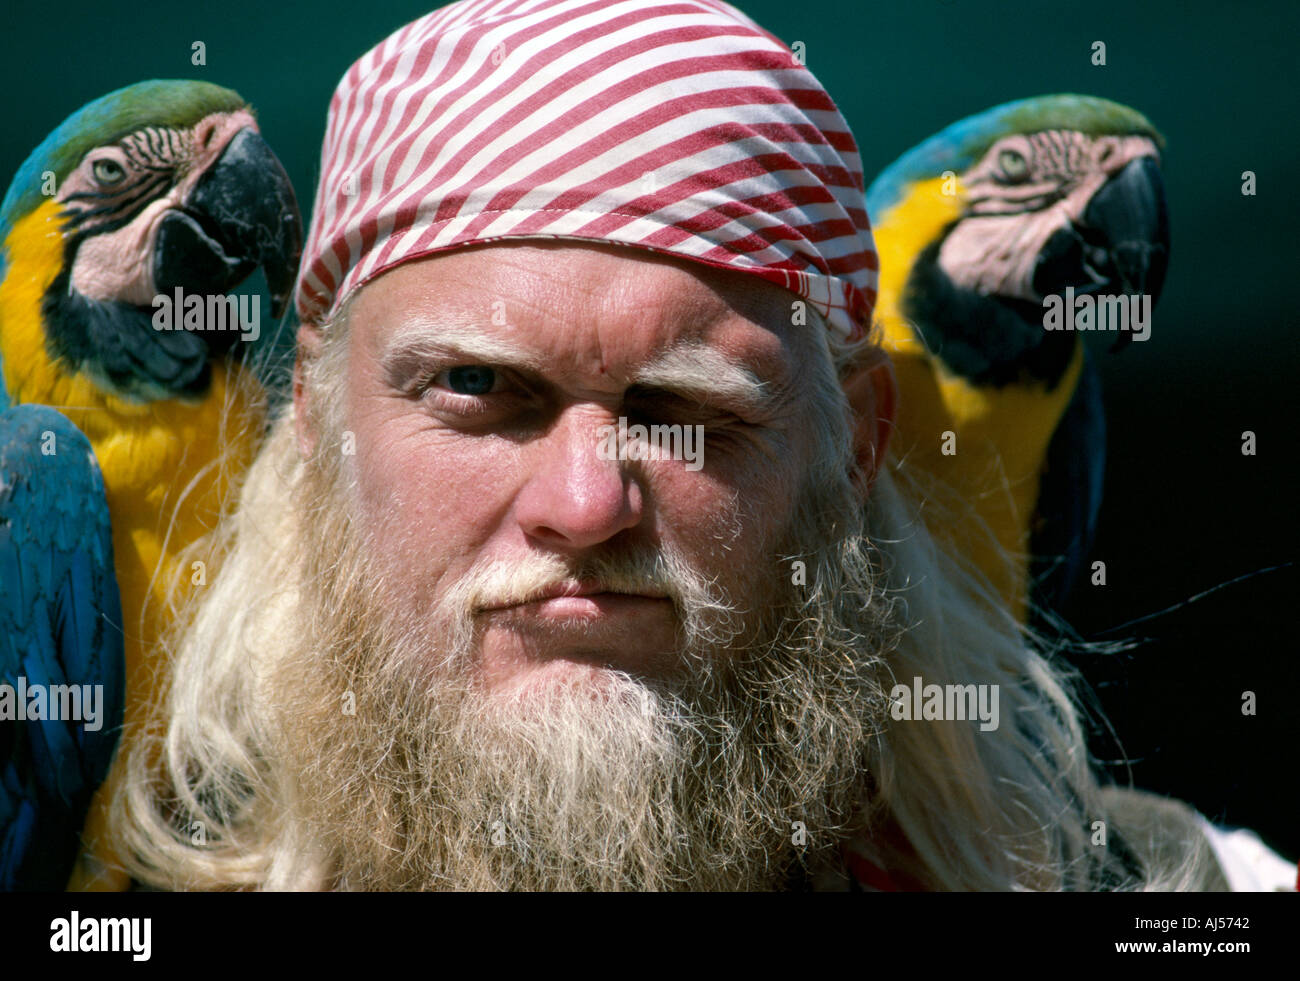 CA San Francisco Street Performer at Fisherman s Wharf area pirate with parrots - Stock Image